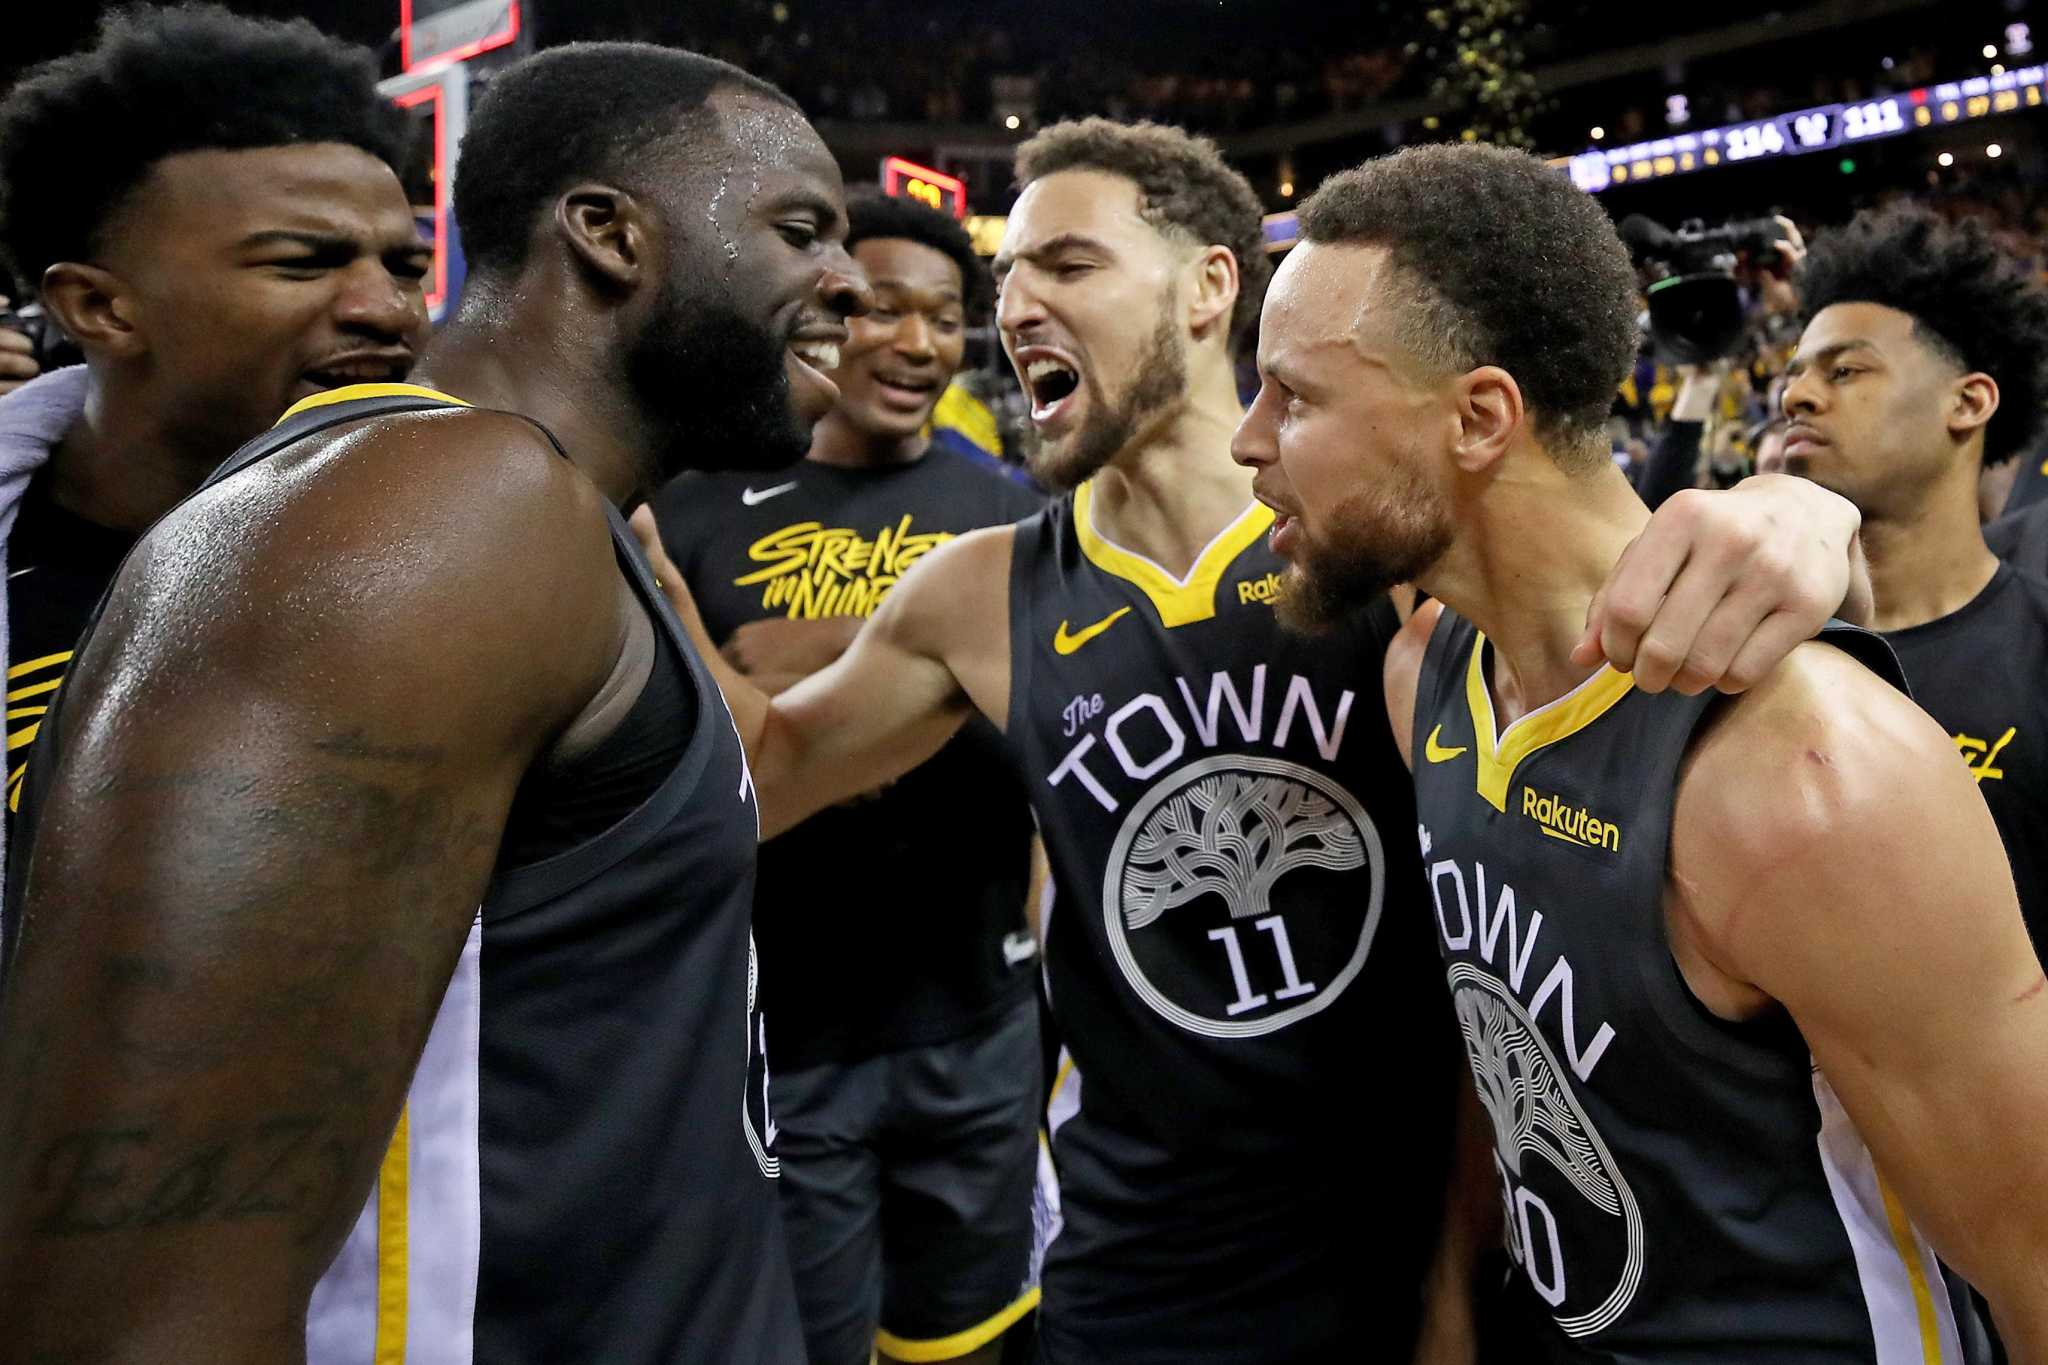 76787021ace Can the Warriors become NBA s greatest dynasty  It ll take some work -  SFChronicle.com